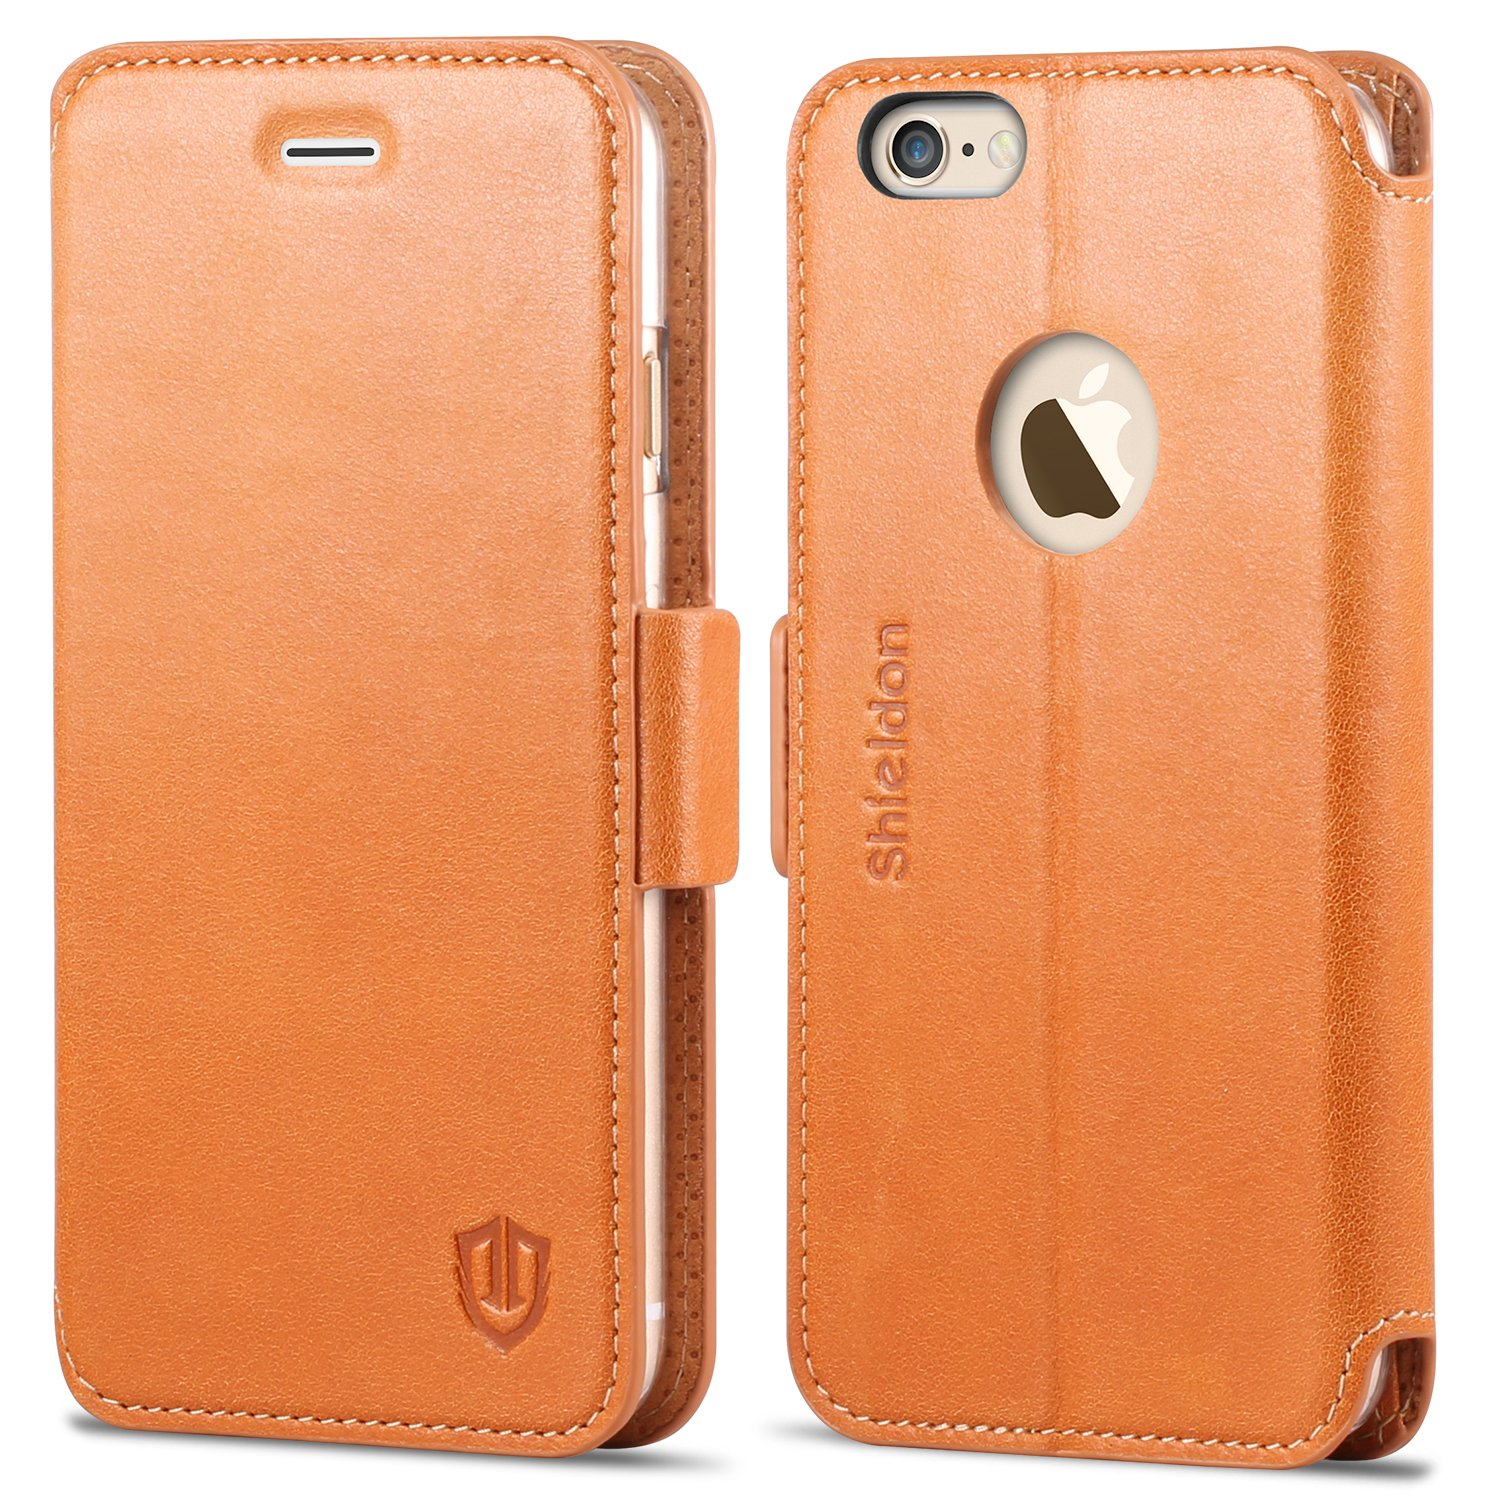 SHIELDON iPhone 6s Case, iPhone 6 case, Genuine Leather Flip Folio [Kickstand Feature] iPhone 6s Wallet Book Case ID&Credit Card Pocket Magnetic Closure iPhone 6/6s - Brown